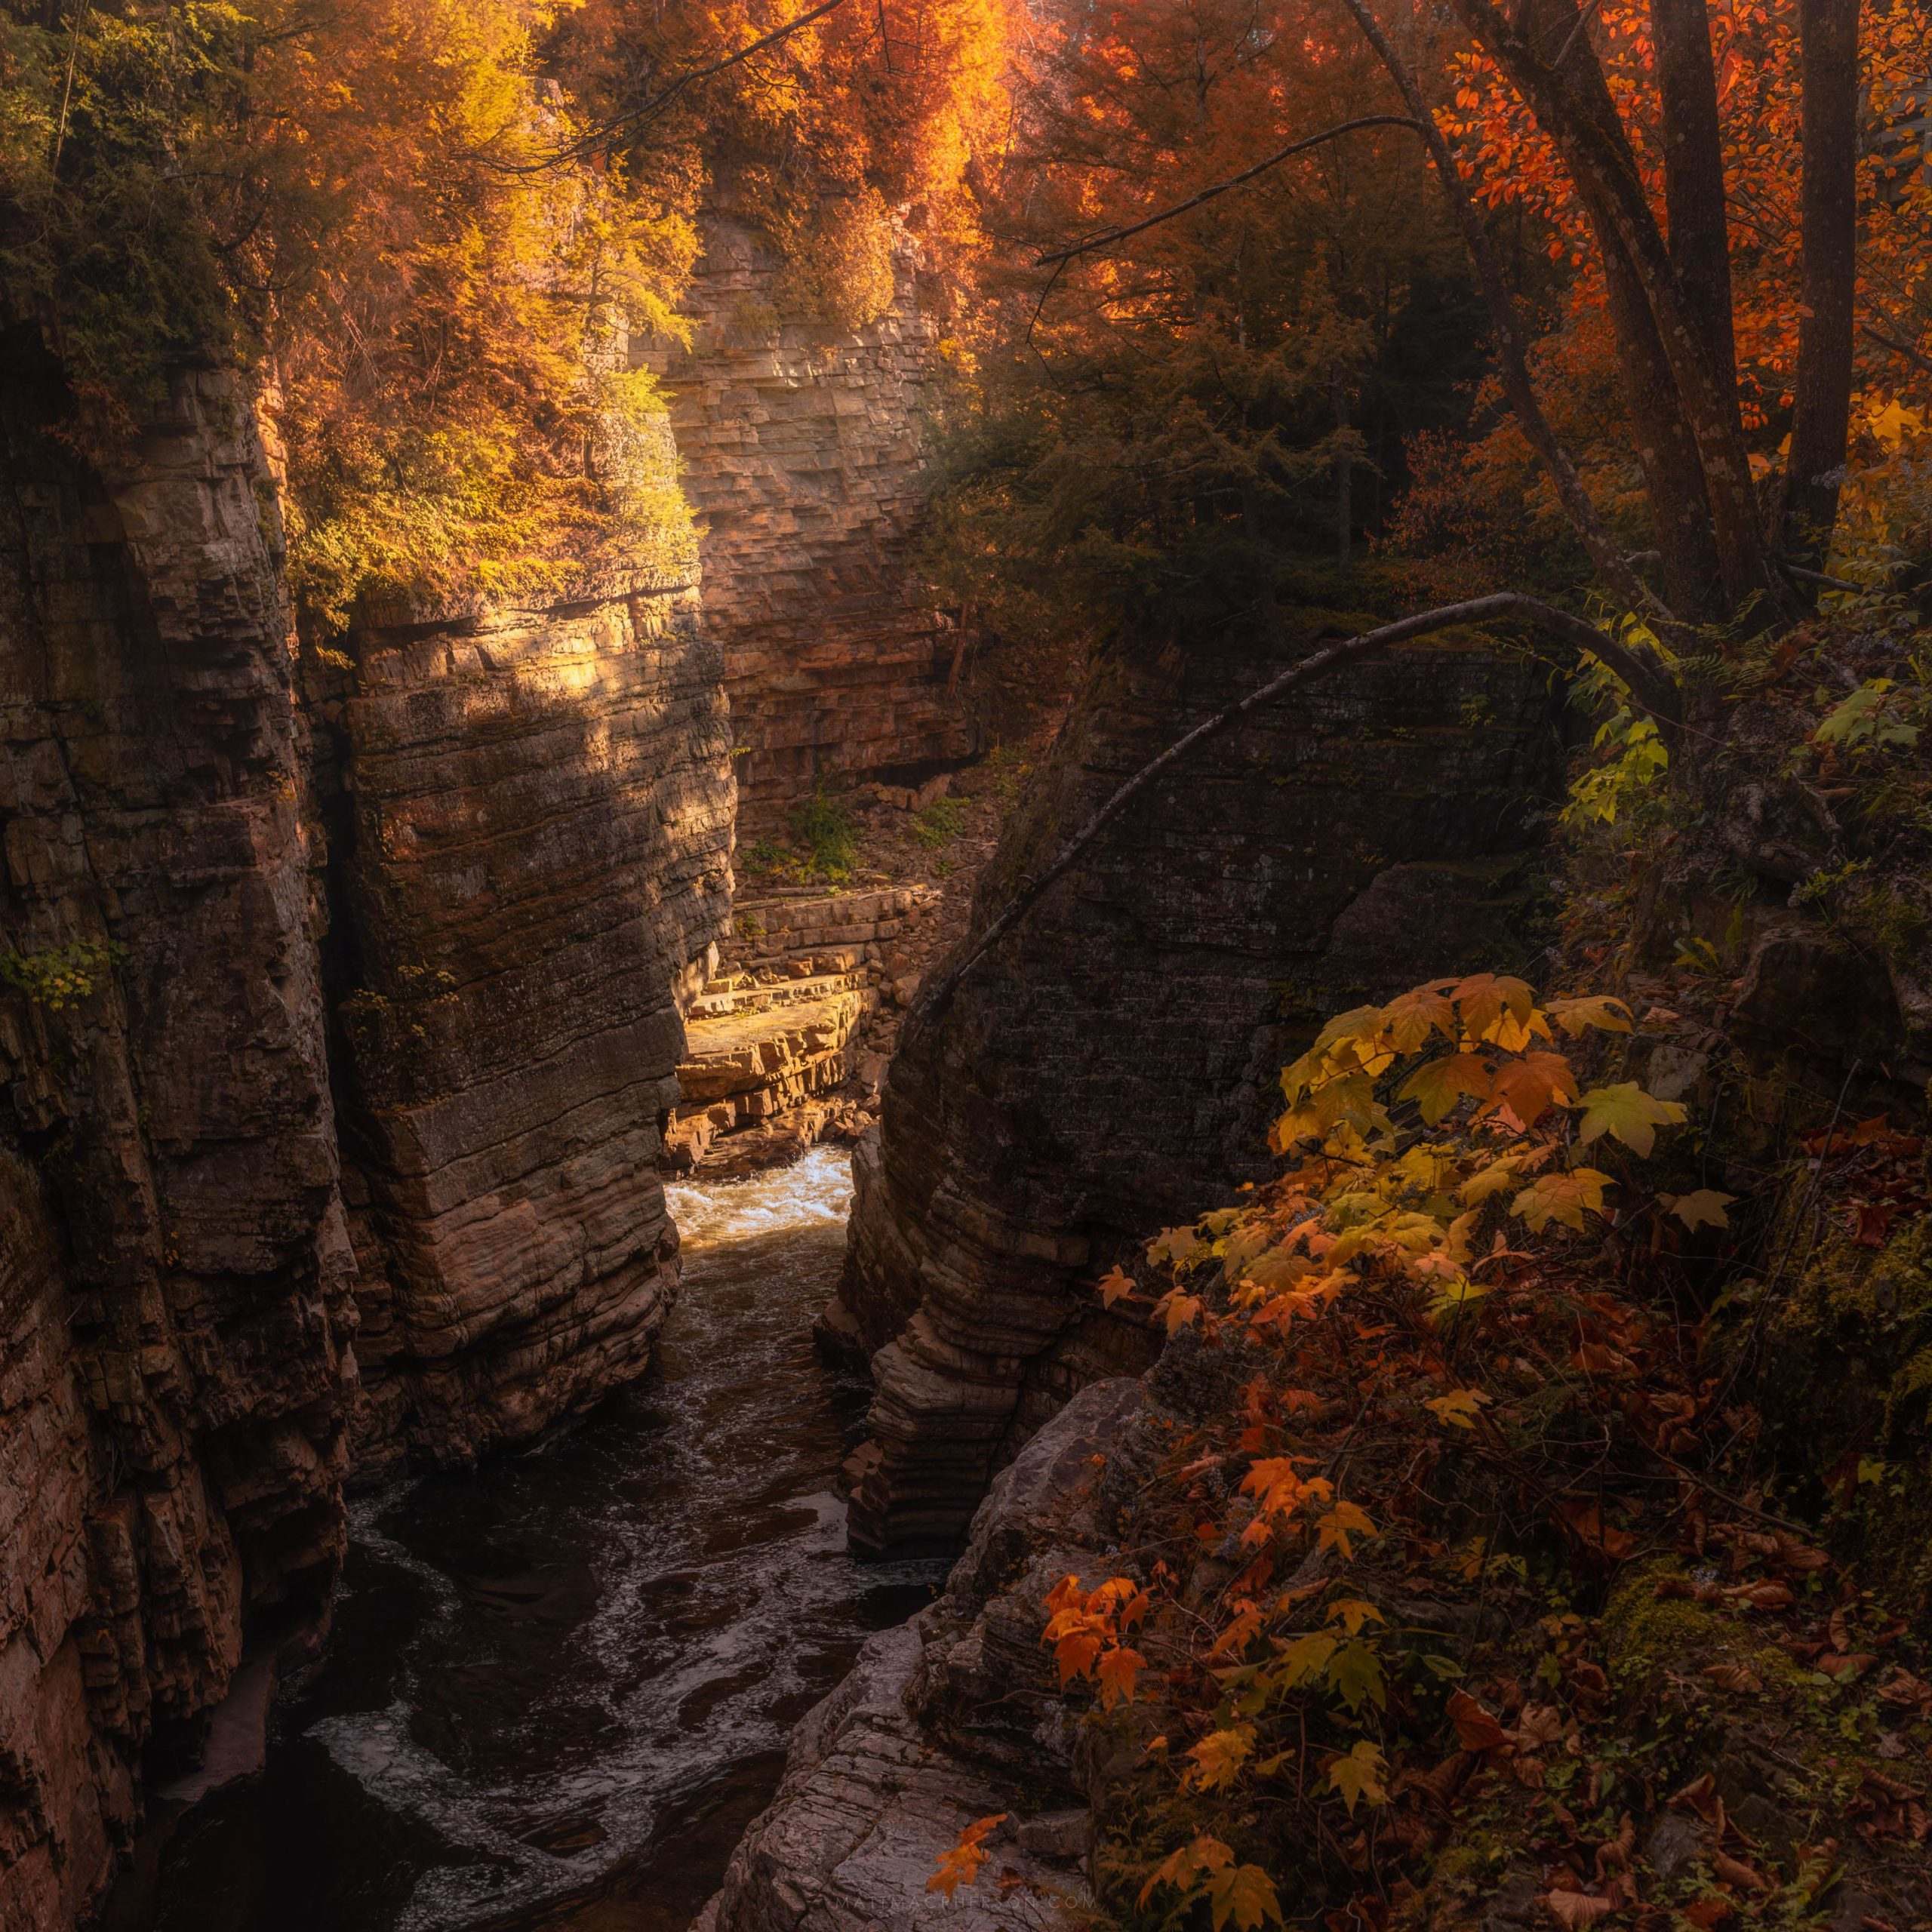 From an autumn hike into Ausable Chasm, New York